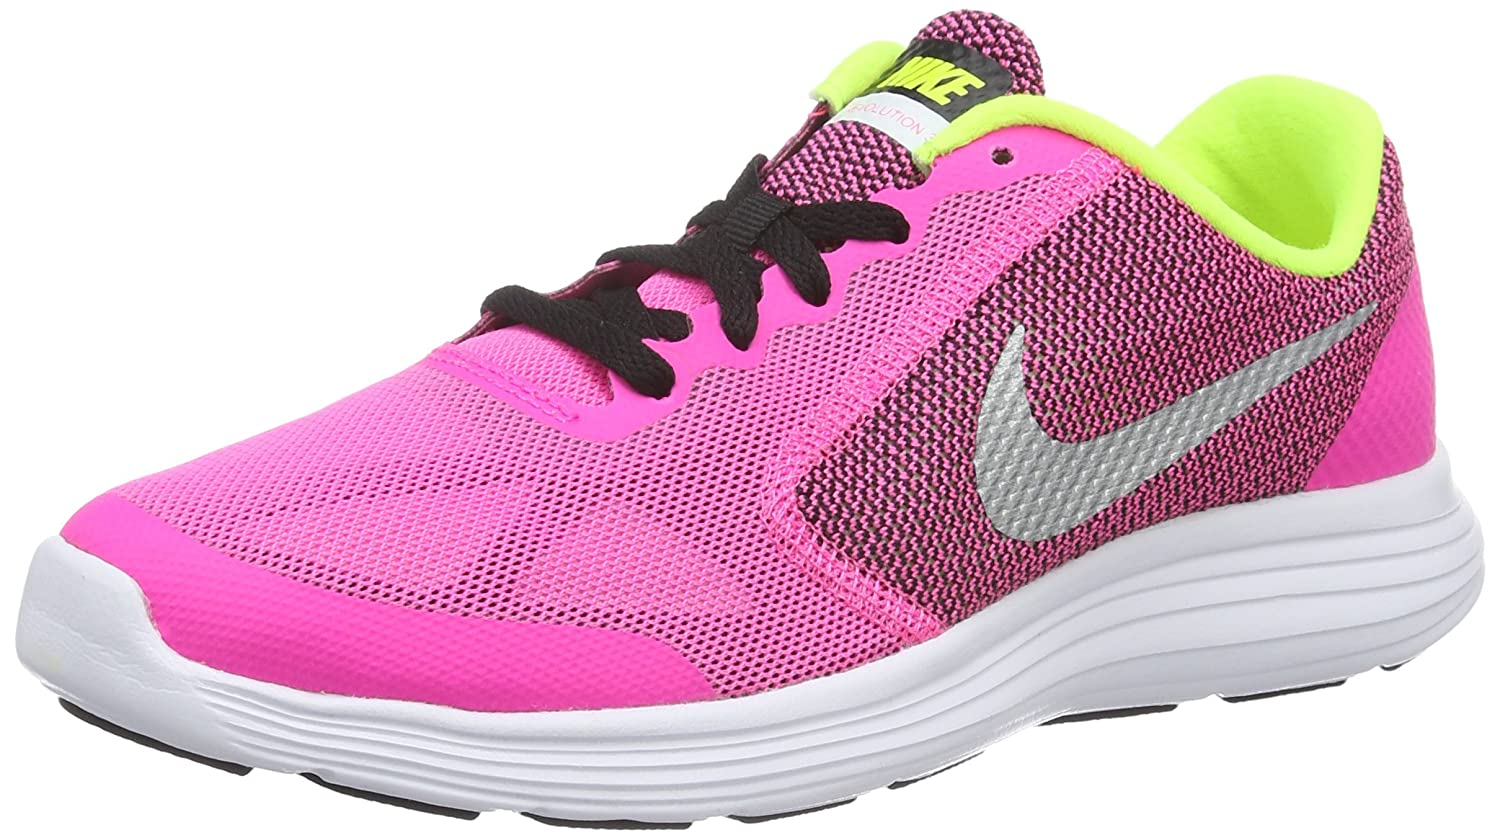 NIKE ' Revolution 3 (GS) Running Shoes B018IPY1NU 7 M US Big Kid|Pink Blast/Metallic Silver/Black/White